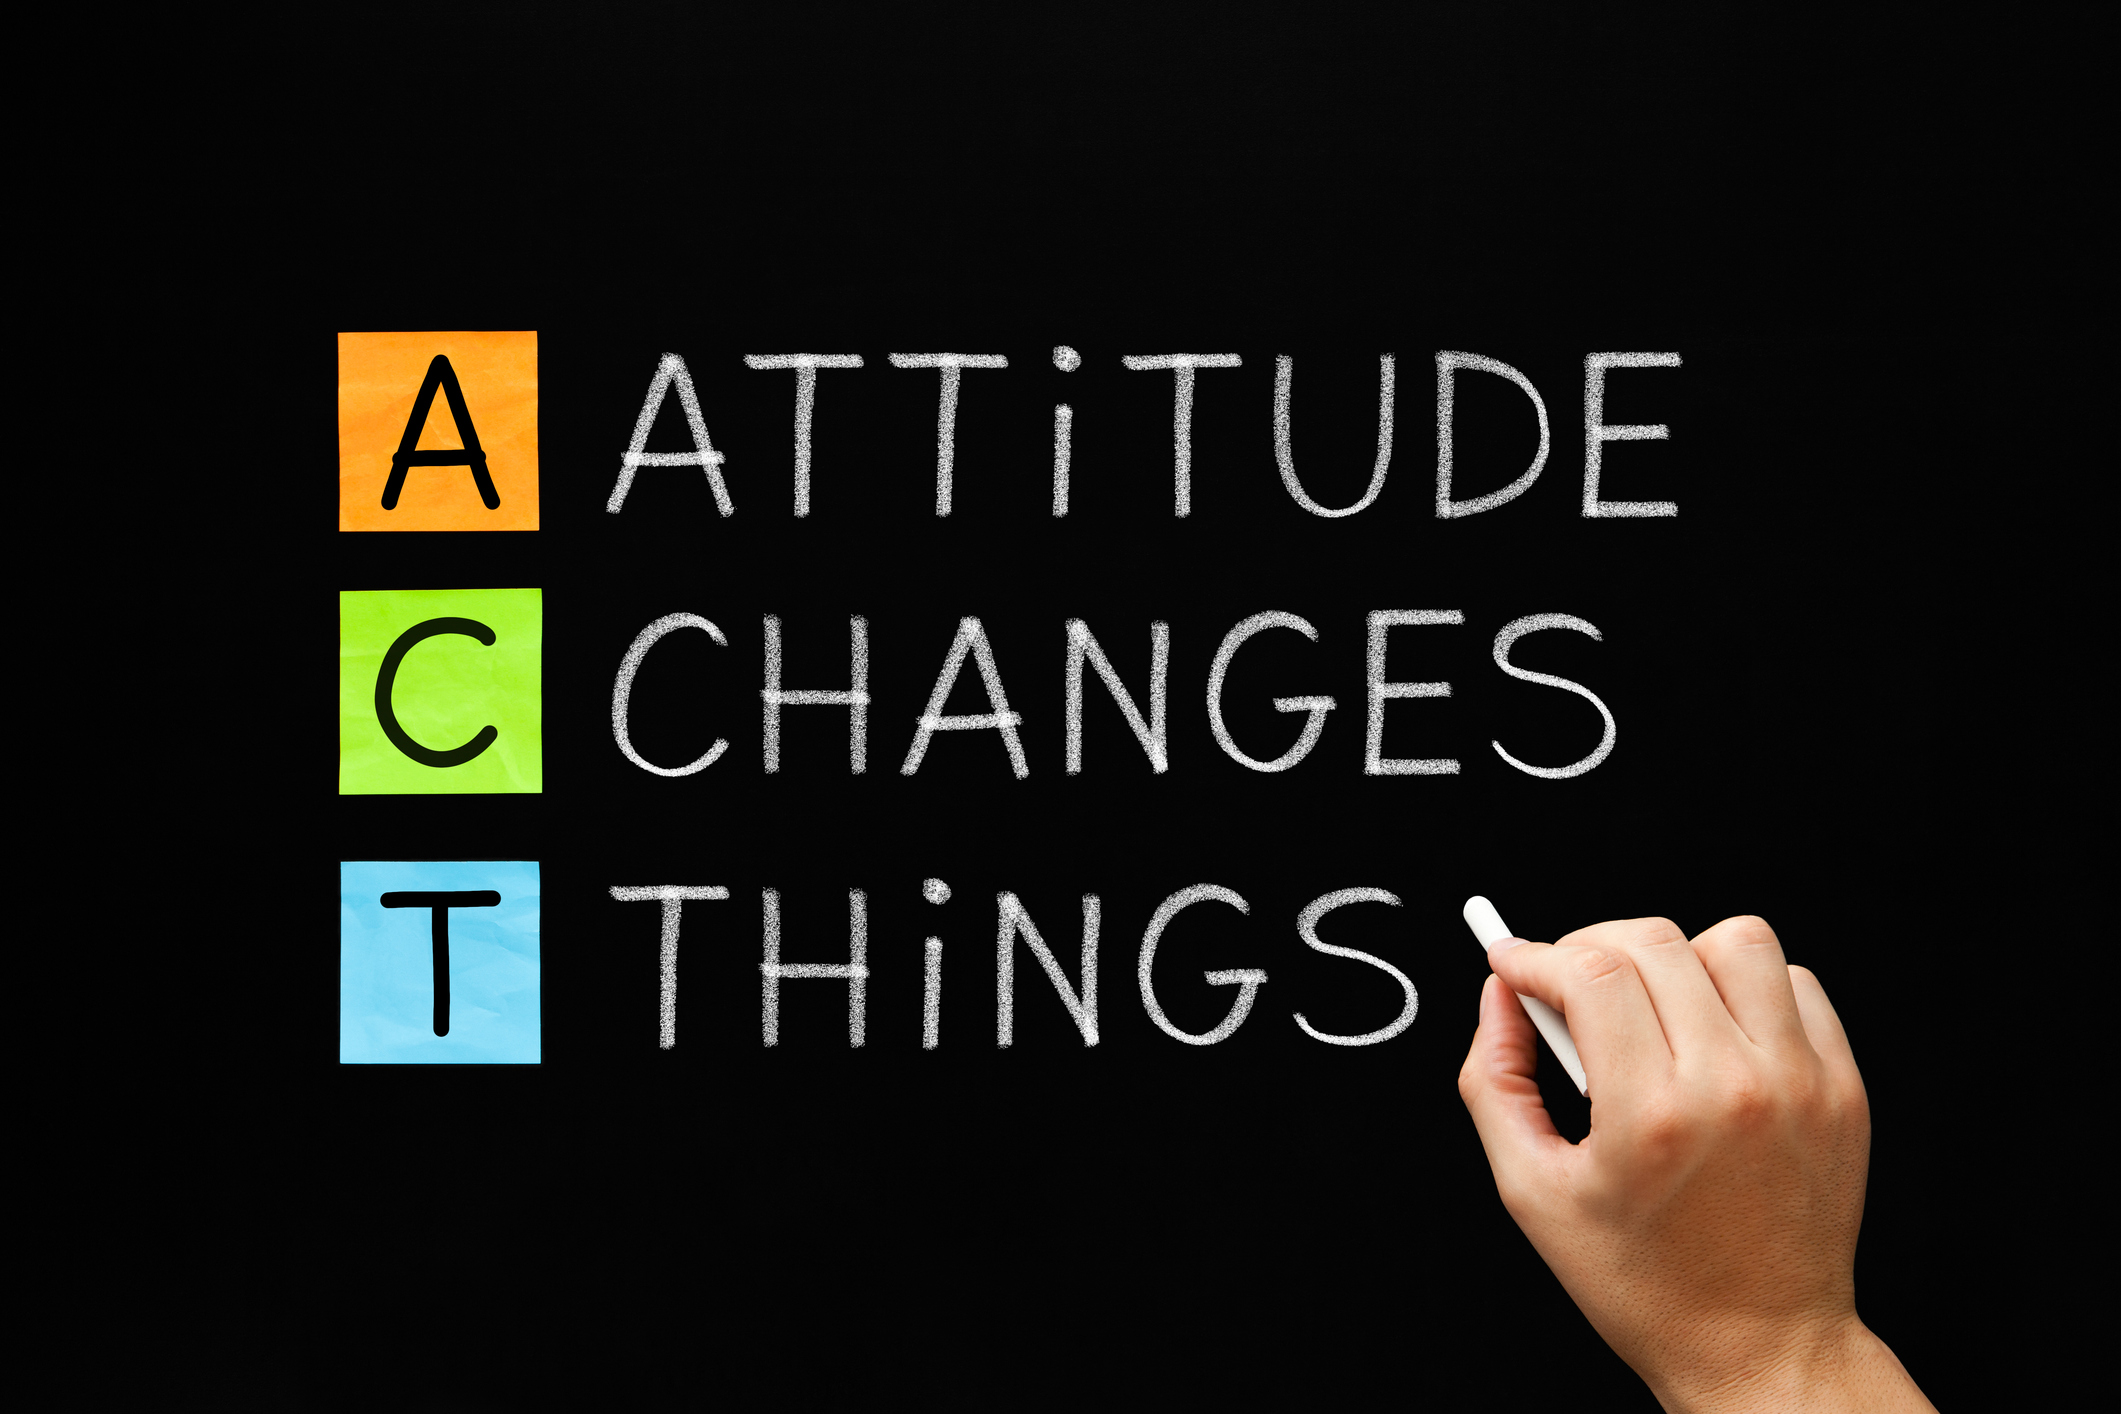 Attitude Changes Things